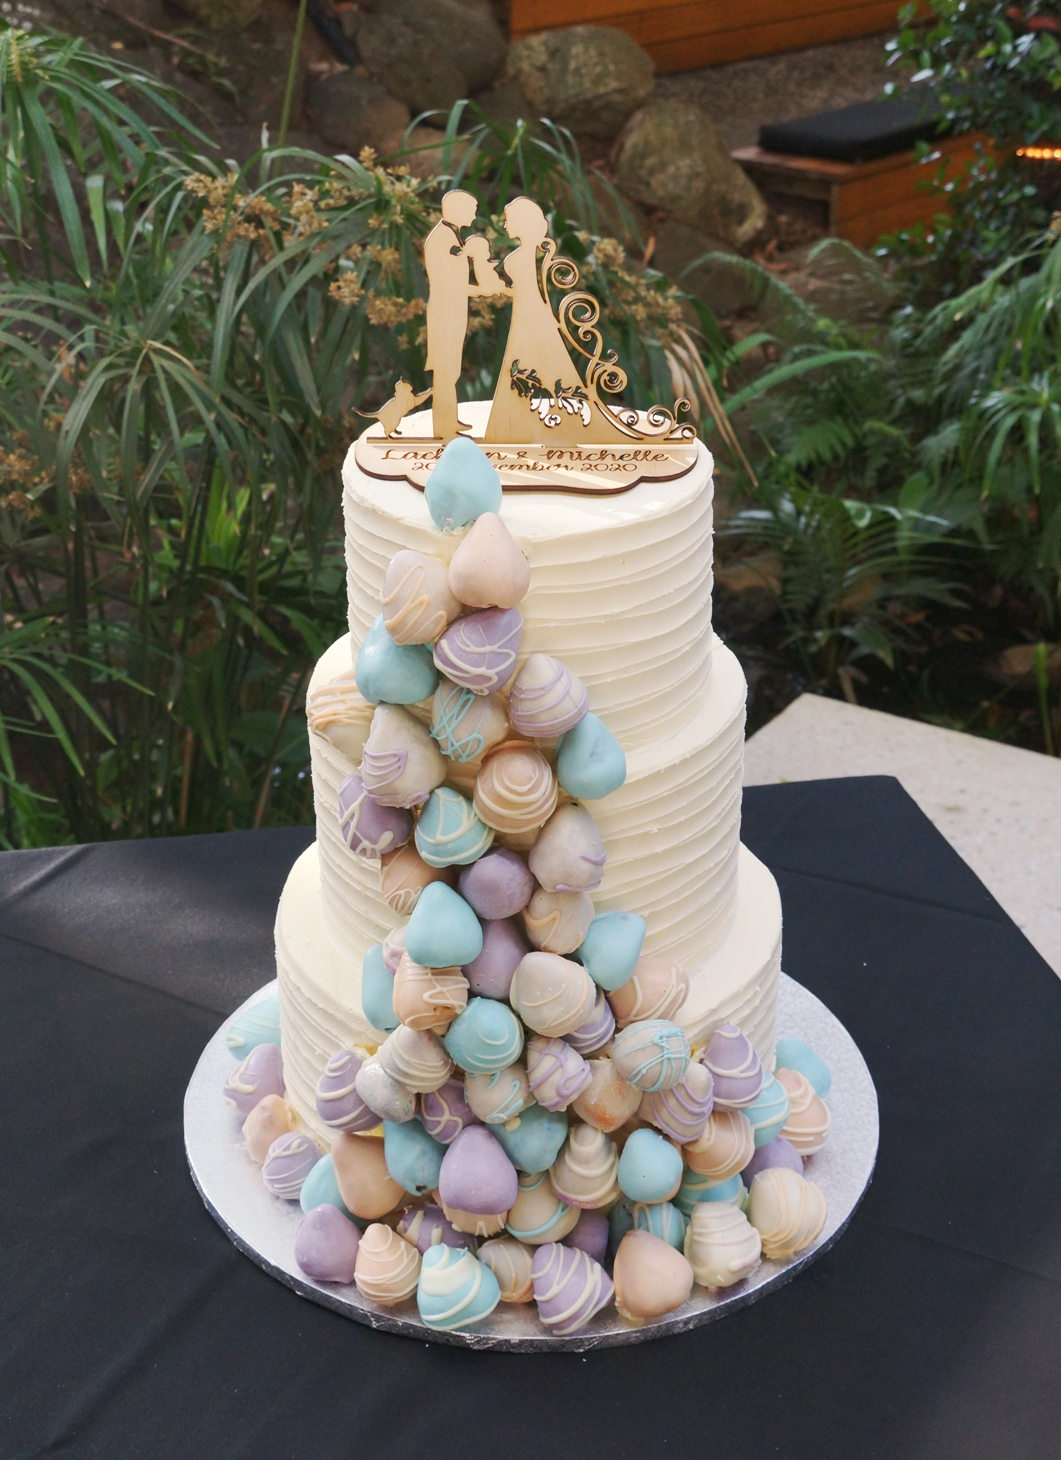 3 Tier lined white buttercream with past